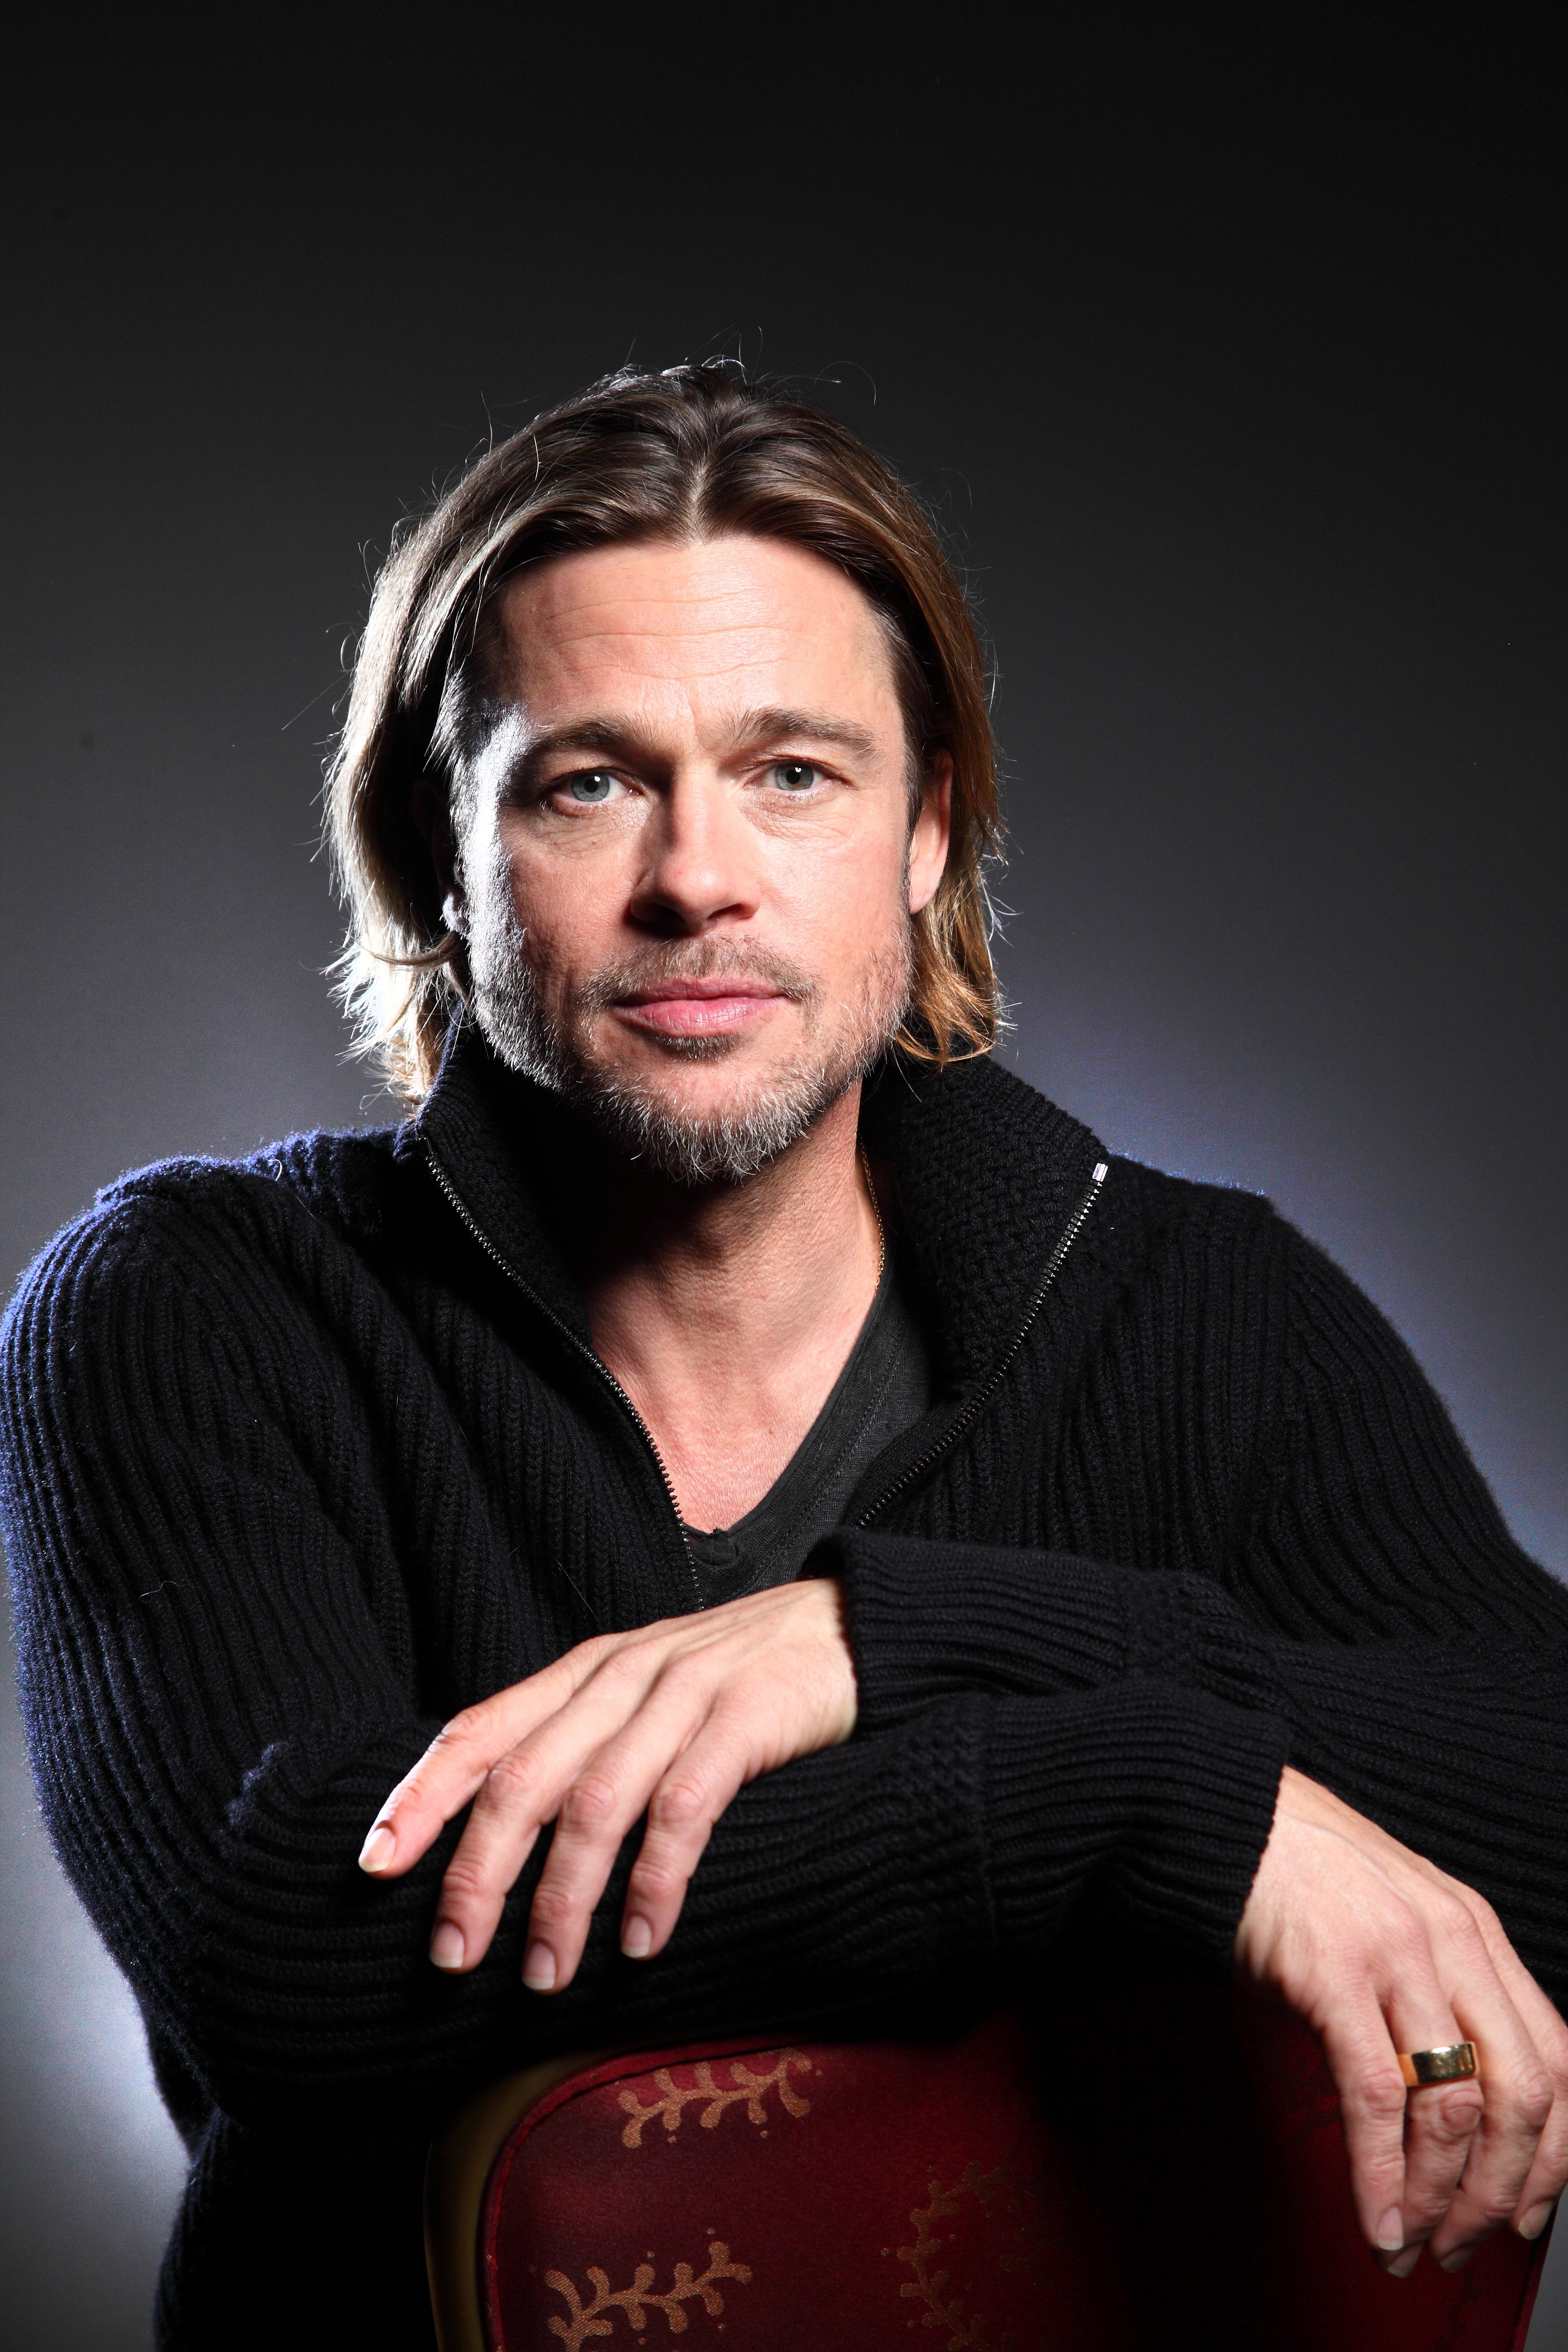 Brad Pitt photo, pics, wallpaper - photo #